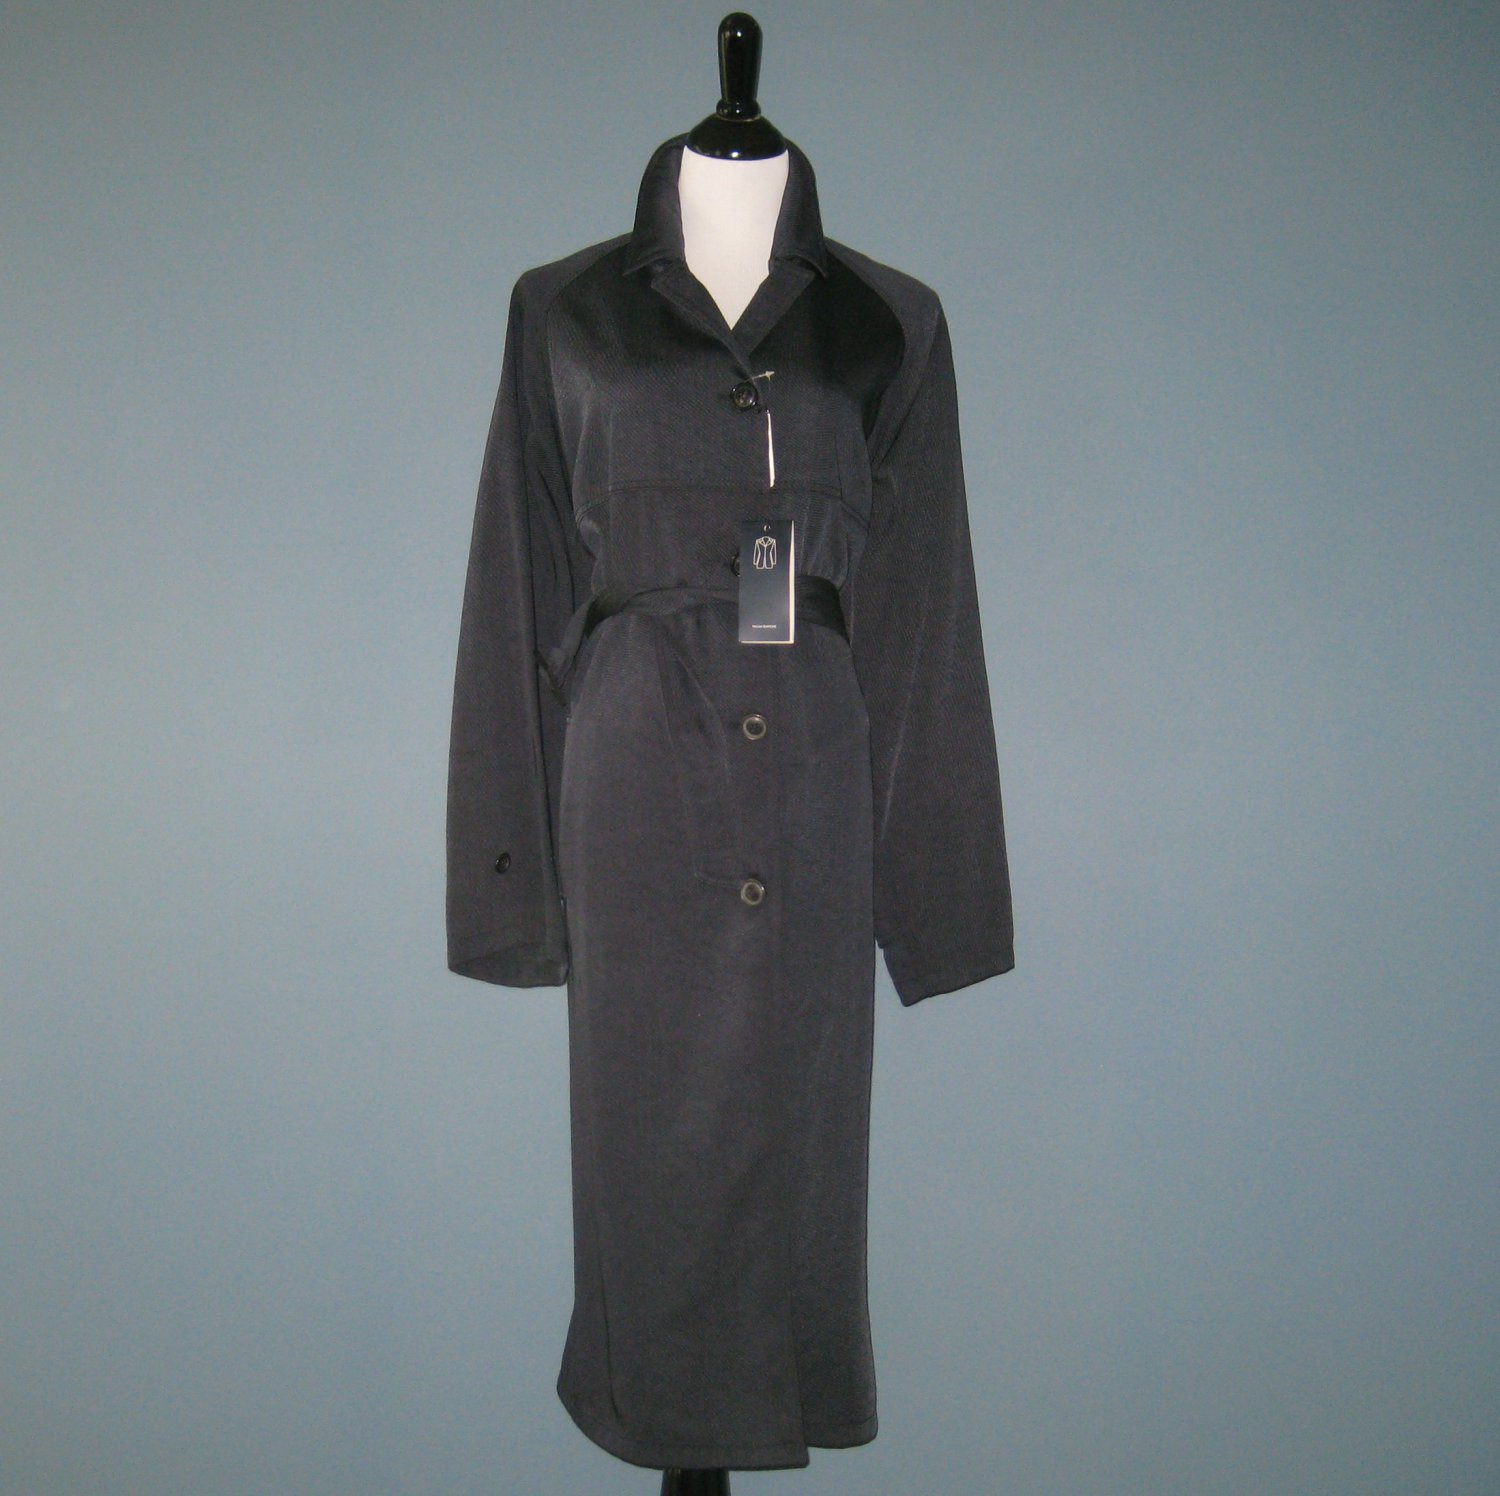 NWT Piazza Sempione Navy Blue Car Trench Top Coat - 44 IT